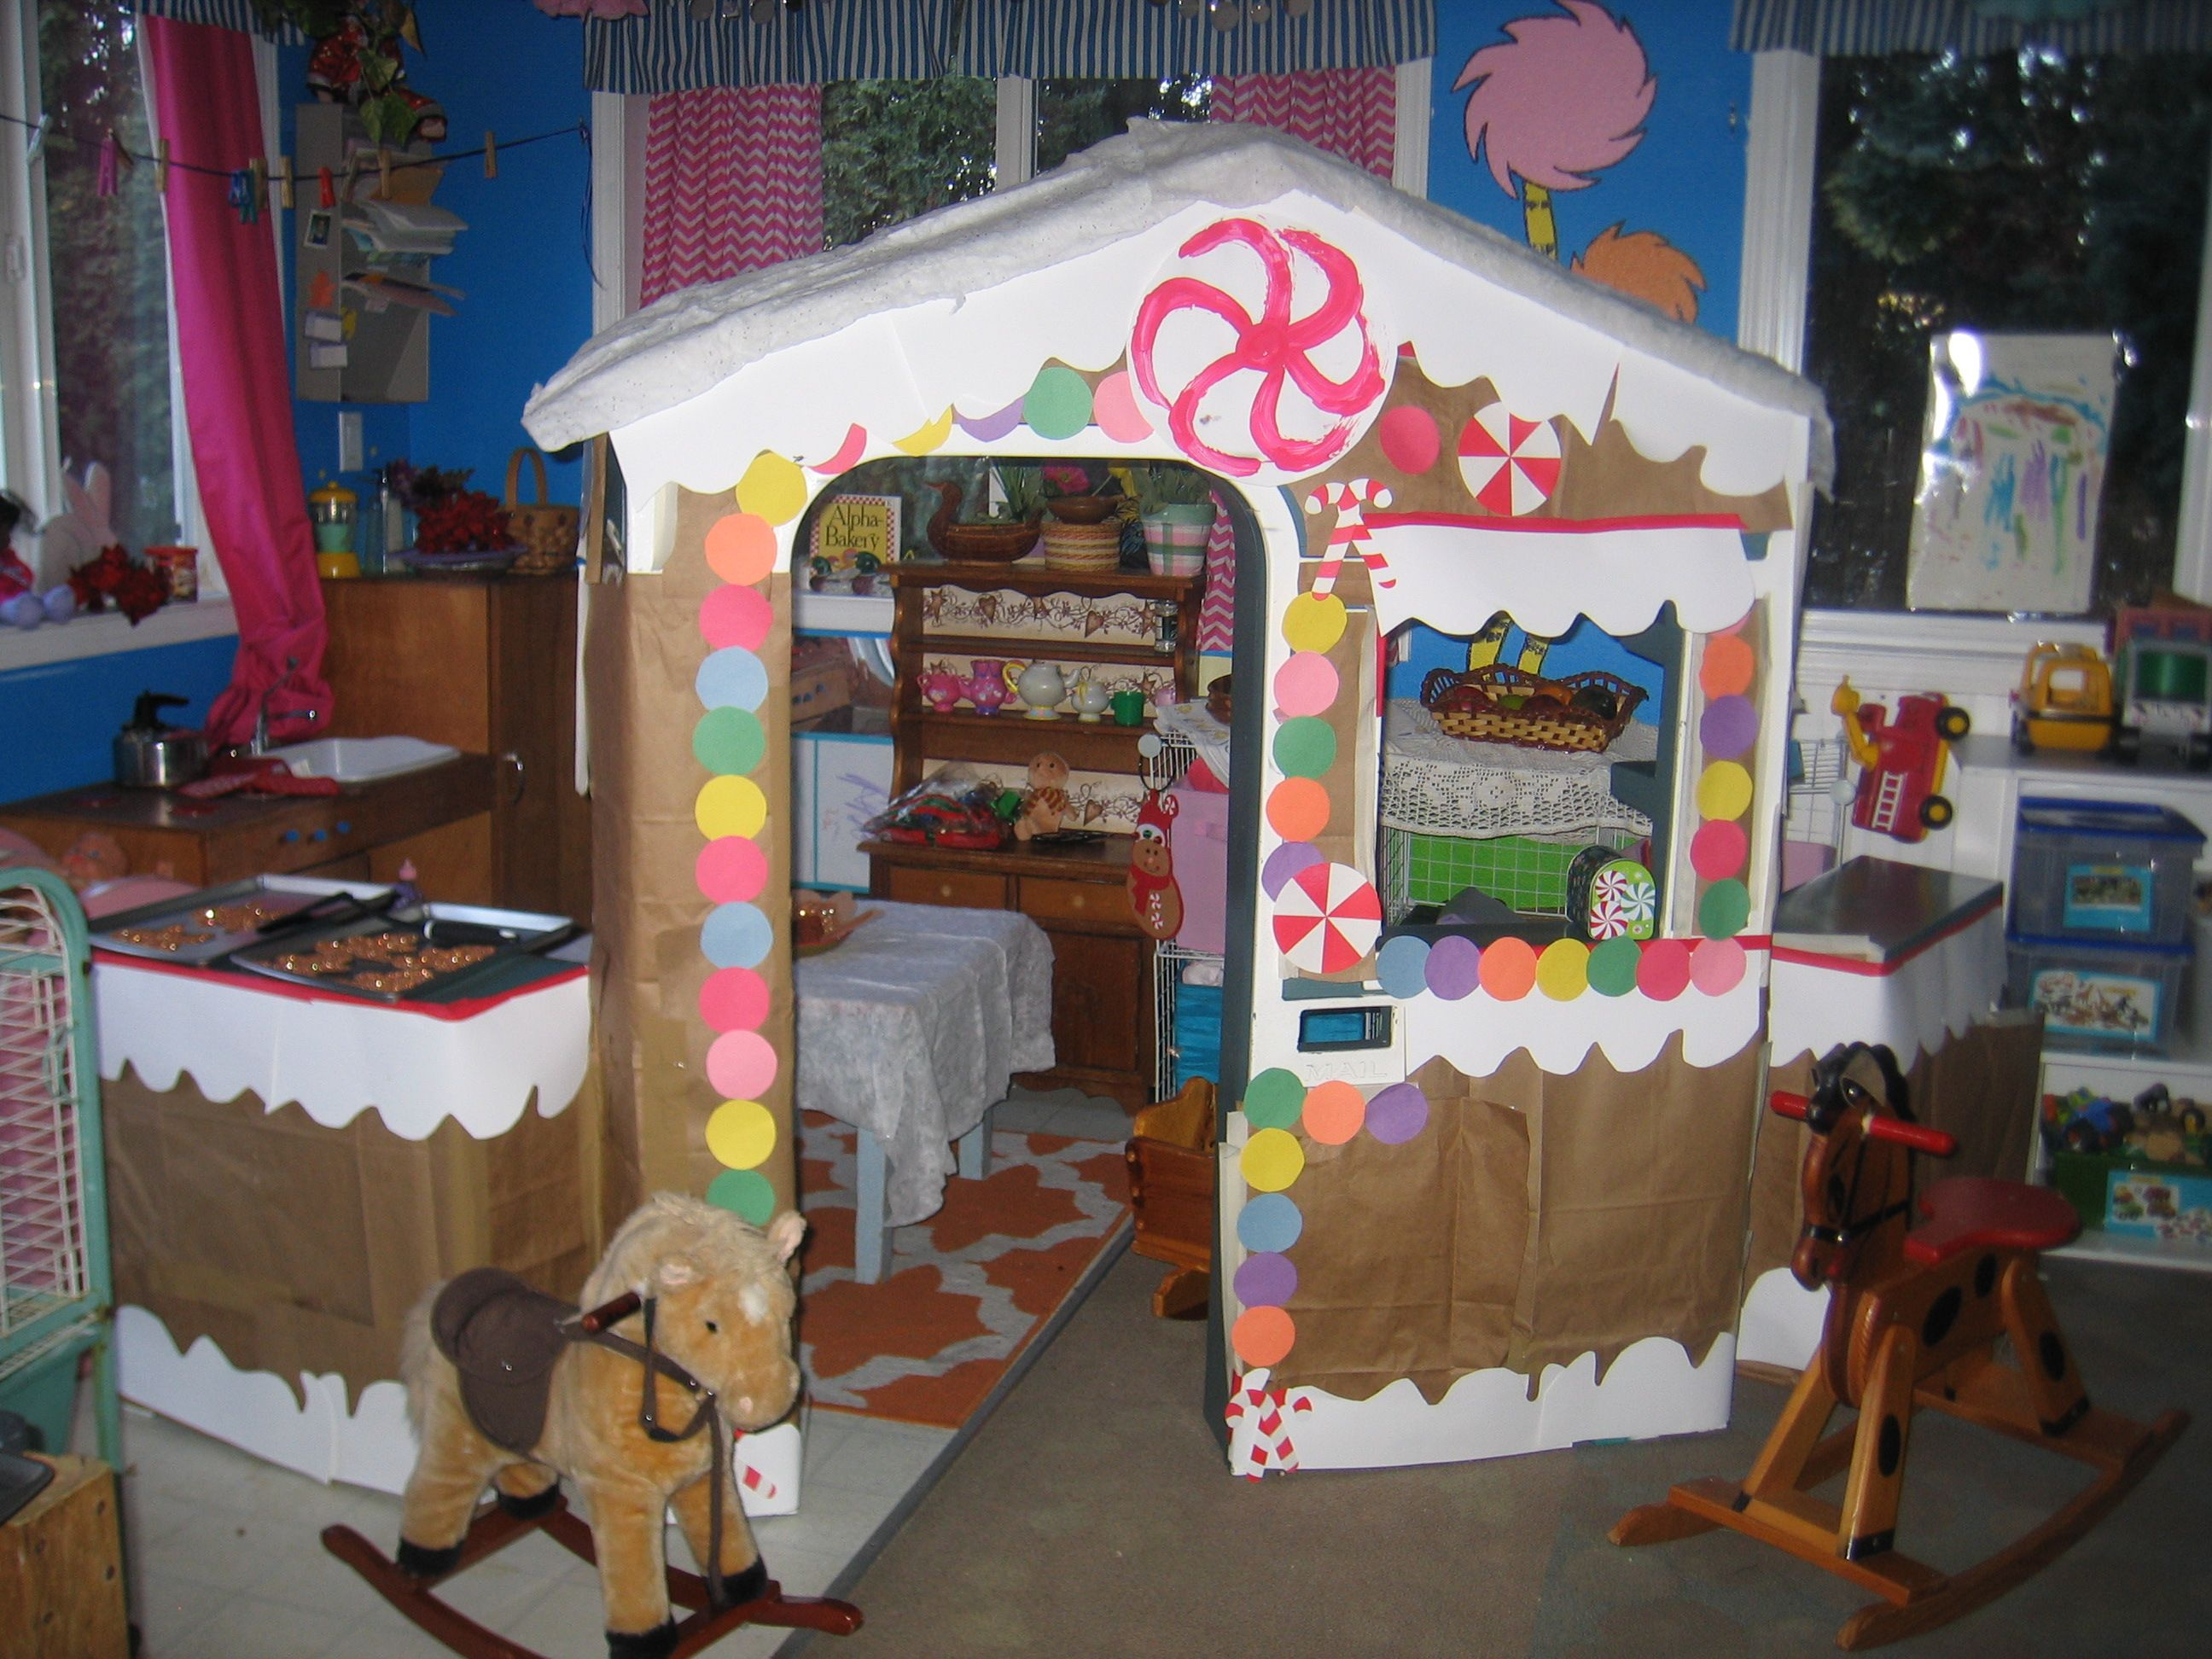 Gingerbread Dramatic Play House